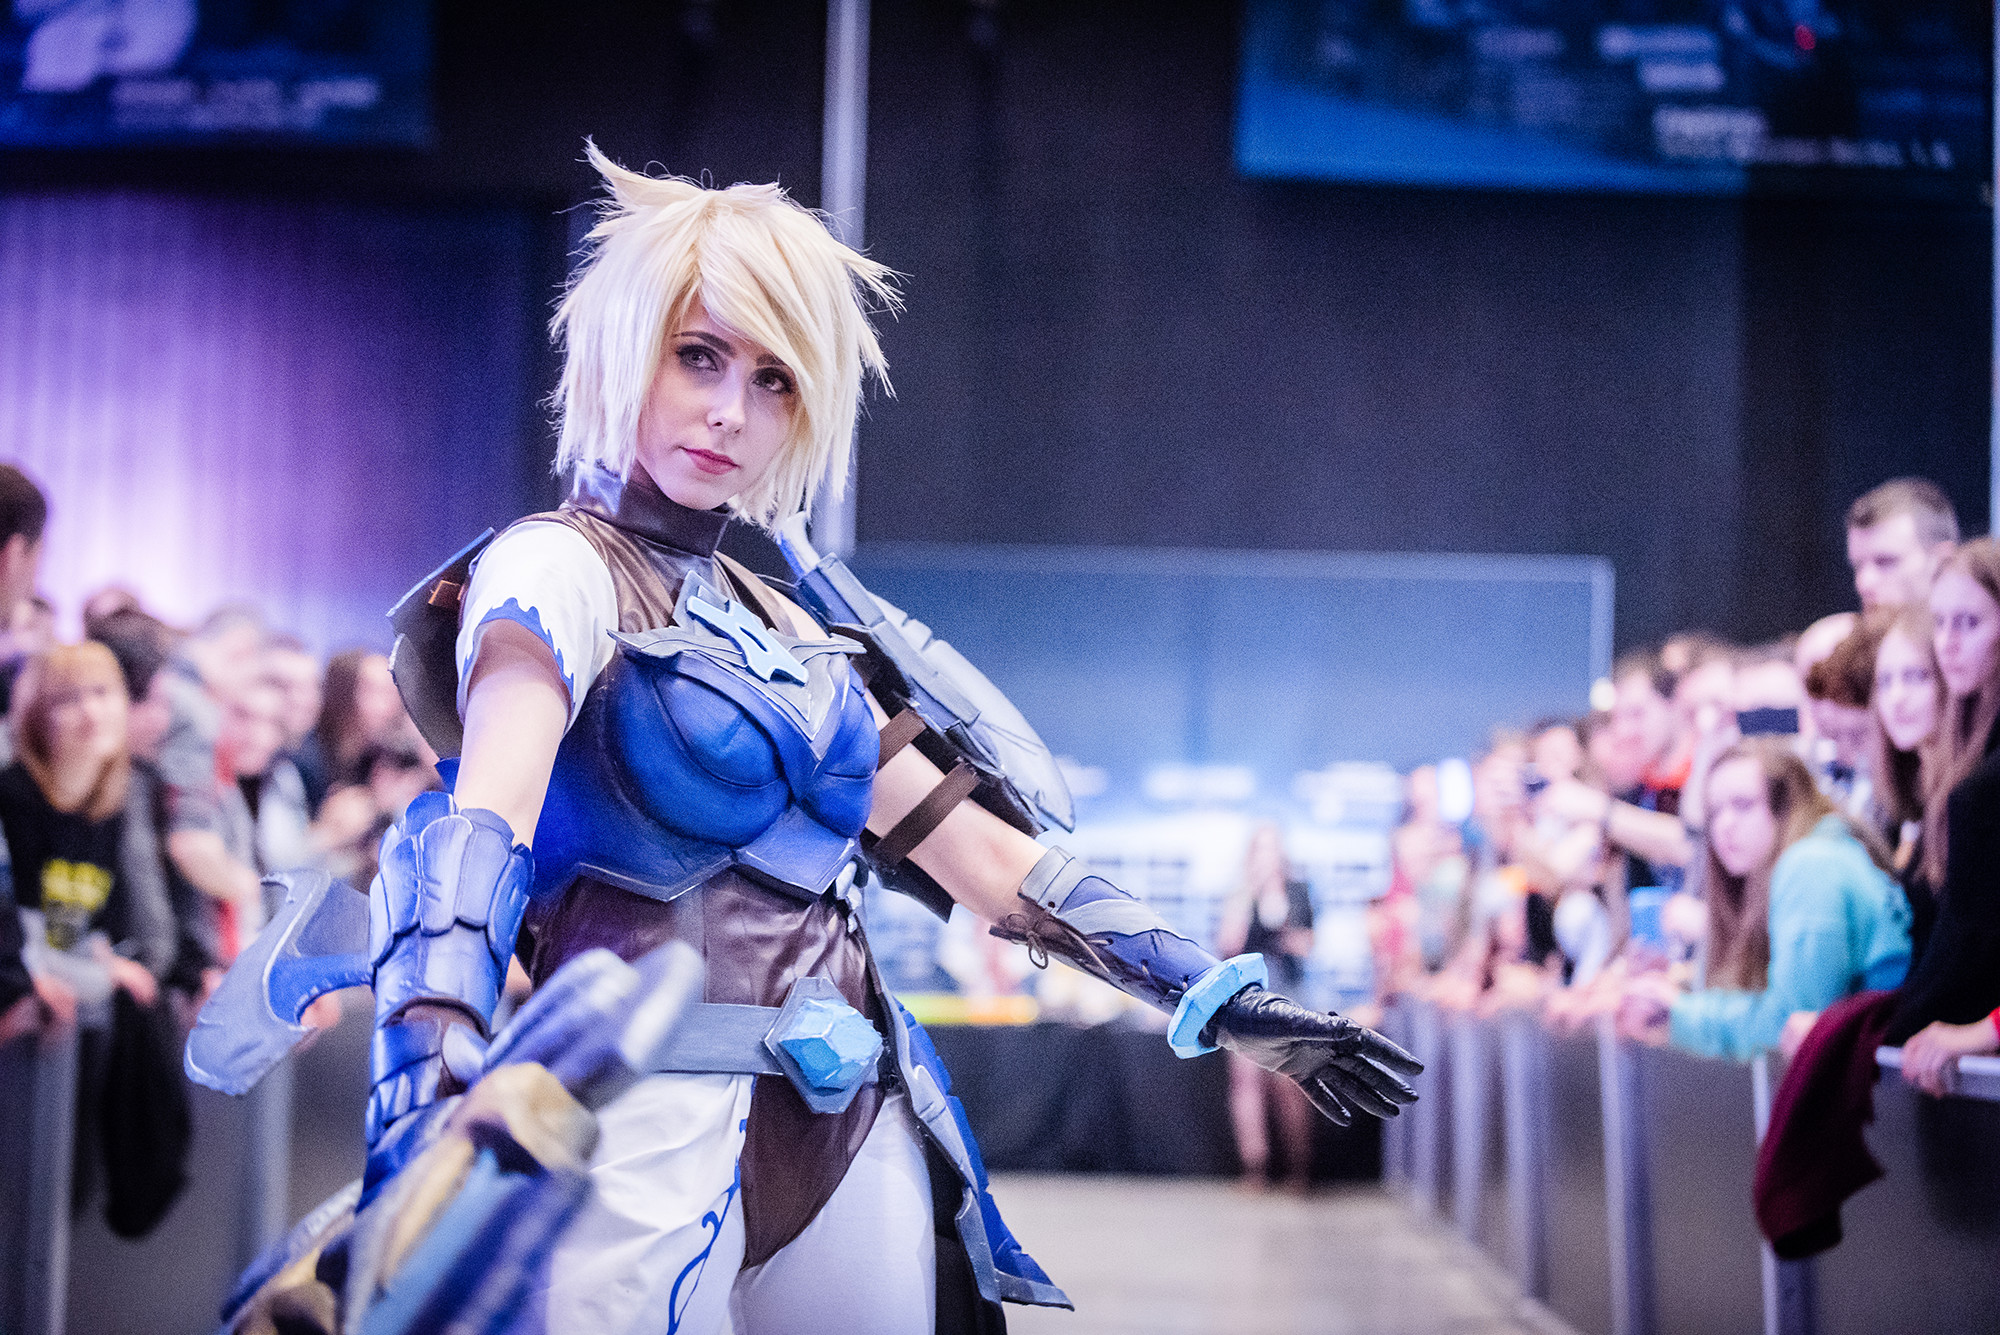 2000x1335 ... Championship Riven cosplay at IEM 2016 by TsukiKamachi